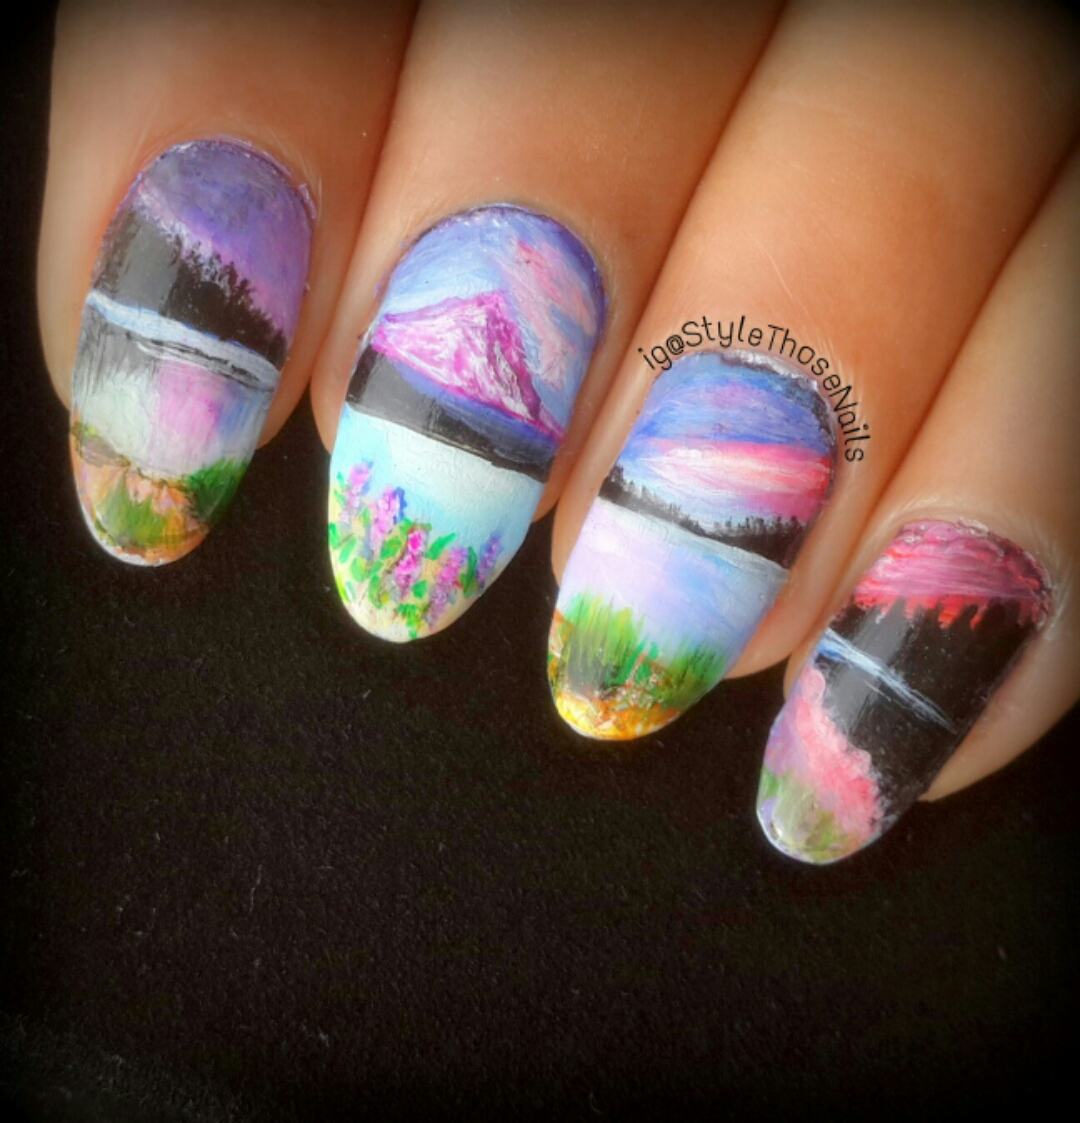 PiggieLuv: Wide open landscape nail art, miniature painting